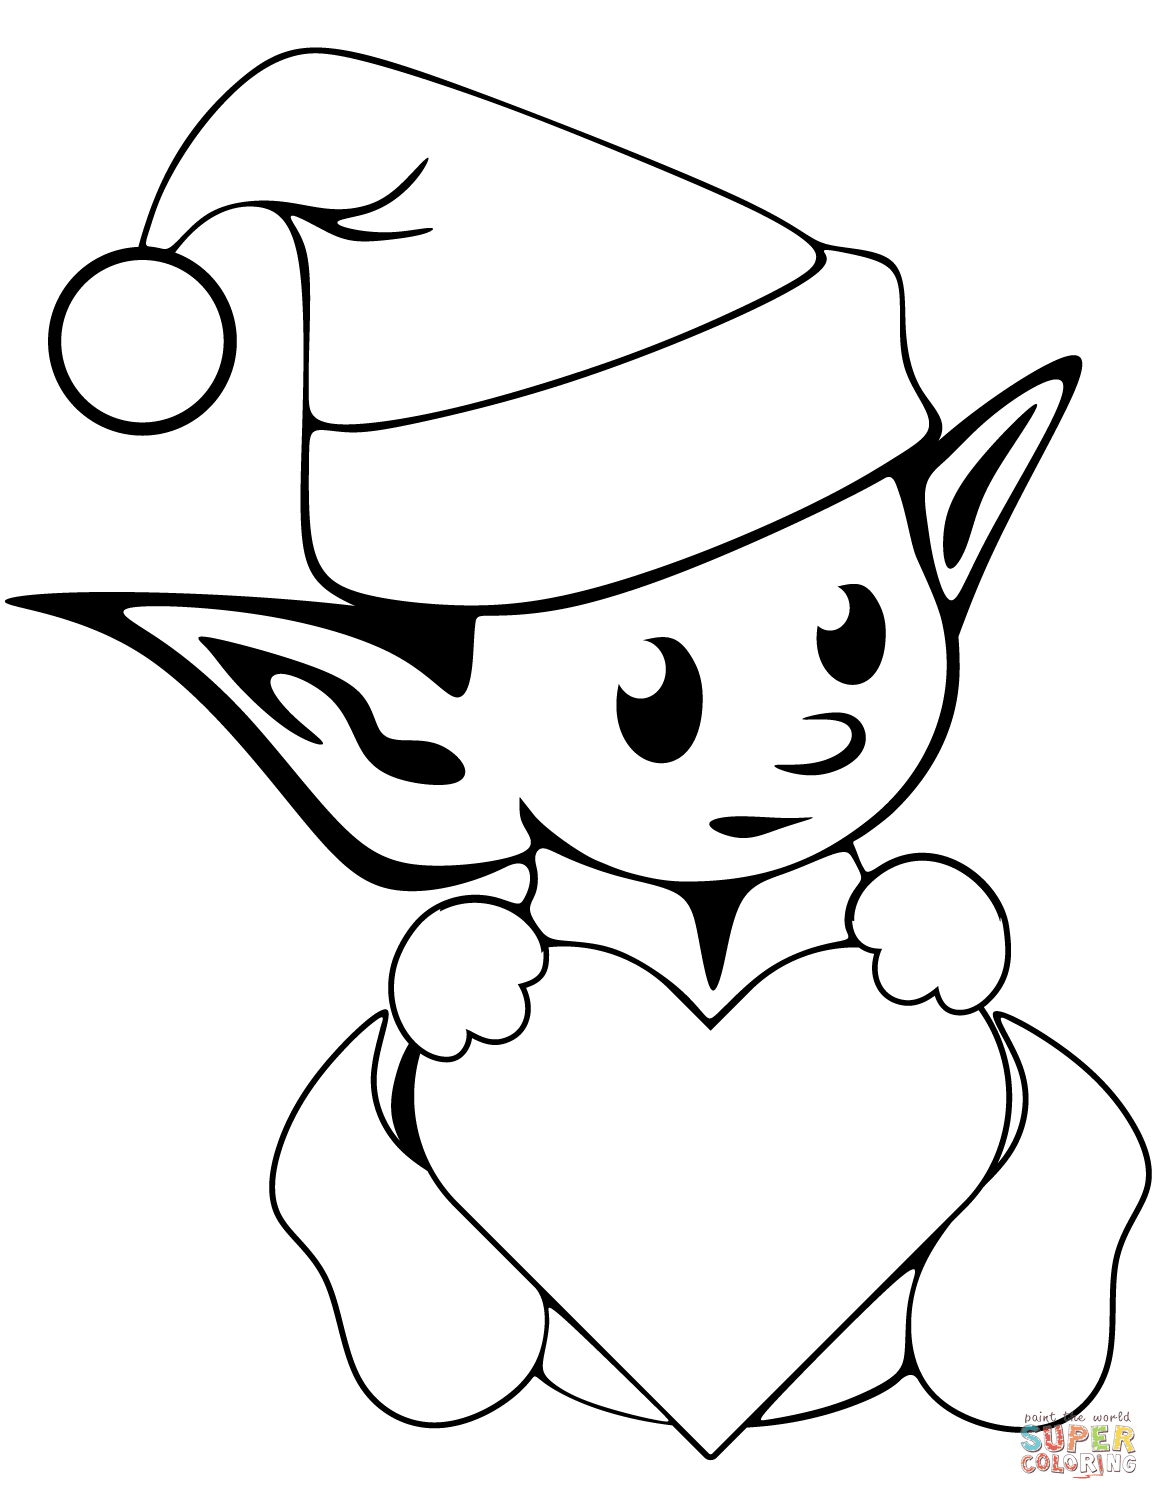 Elf Coloring Pages Printable Cute Christmas Elf Coloring Page Free Printable Coloring Pages